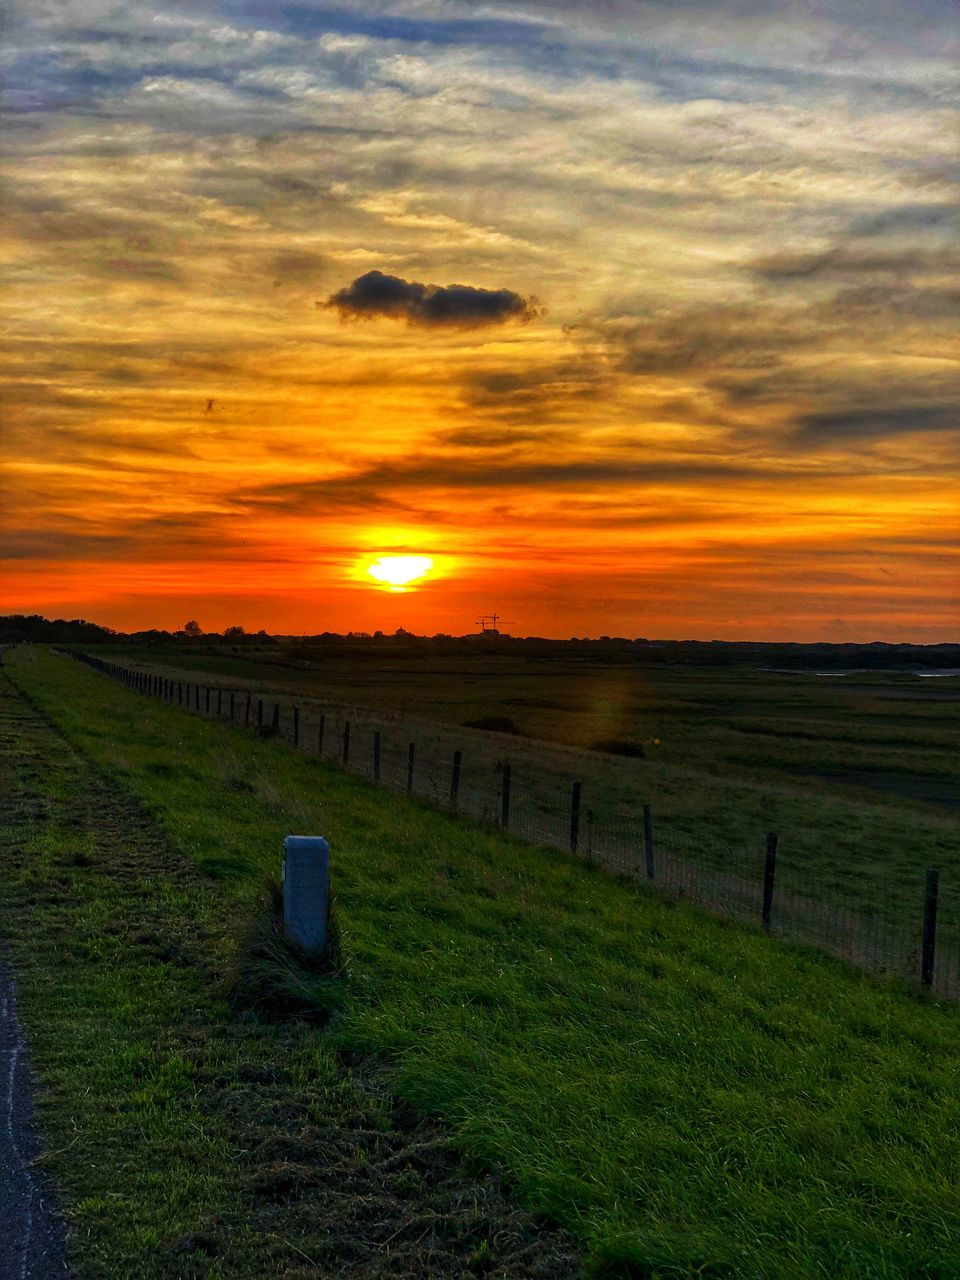 sky, sunset, landscape, environment, cloud - sky, tranquility, land, tranquil scene, field, scenics - nature, grass, nature, beauty in nature, no people, orange color, barrier, fence, boundary, rural scene, sun, outdoors